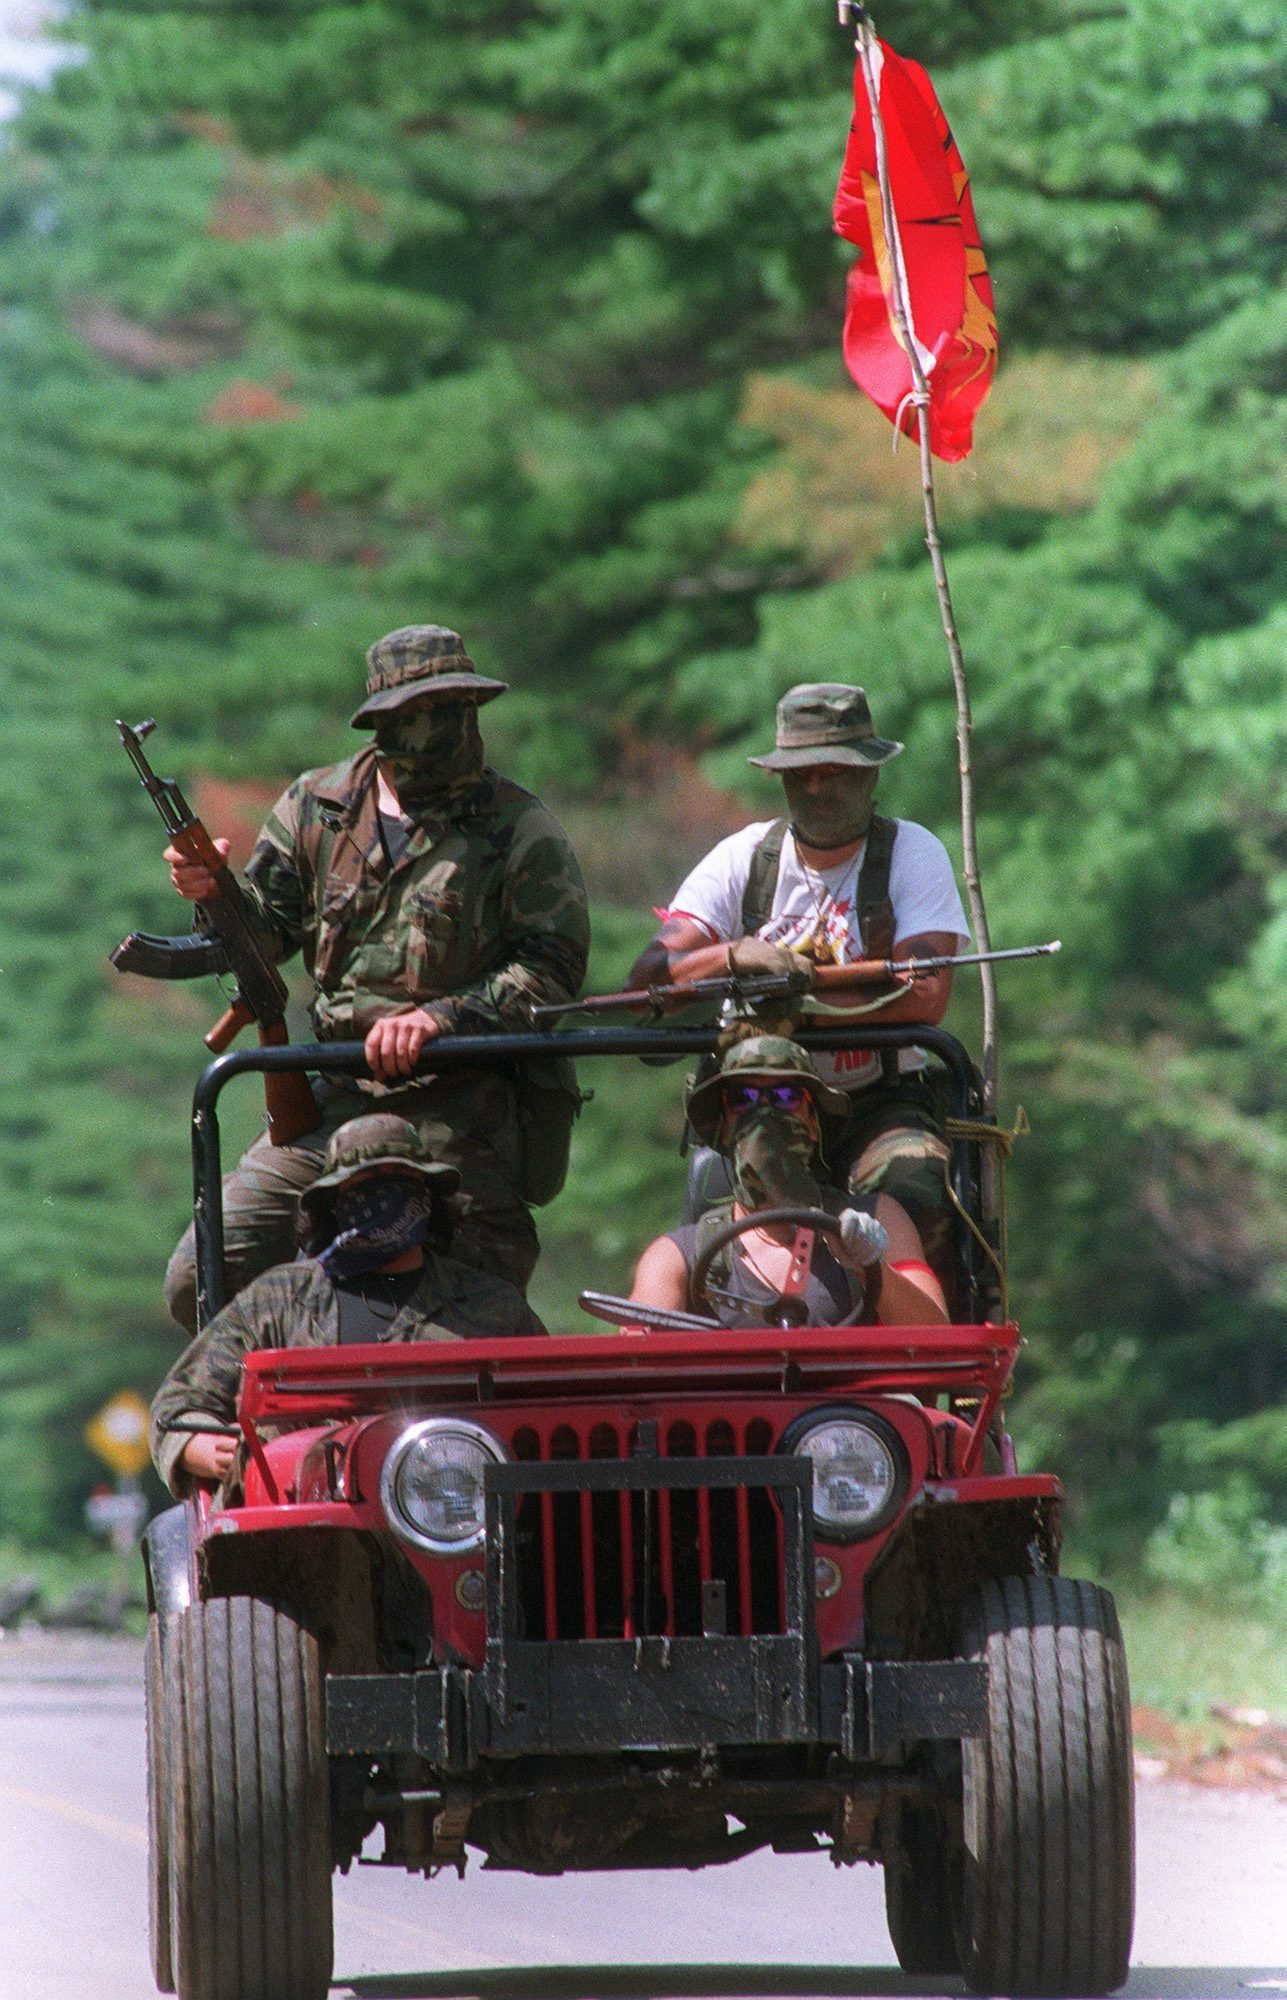 Armed Mohawk Warriors patrol the perimeter of the Kanesatake reserve near Oka, Que., on August 8, 1990, a month into the standoff between Mohawks and police. (Paul Chiasson/The Canadian Press)